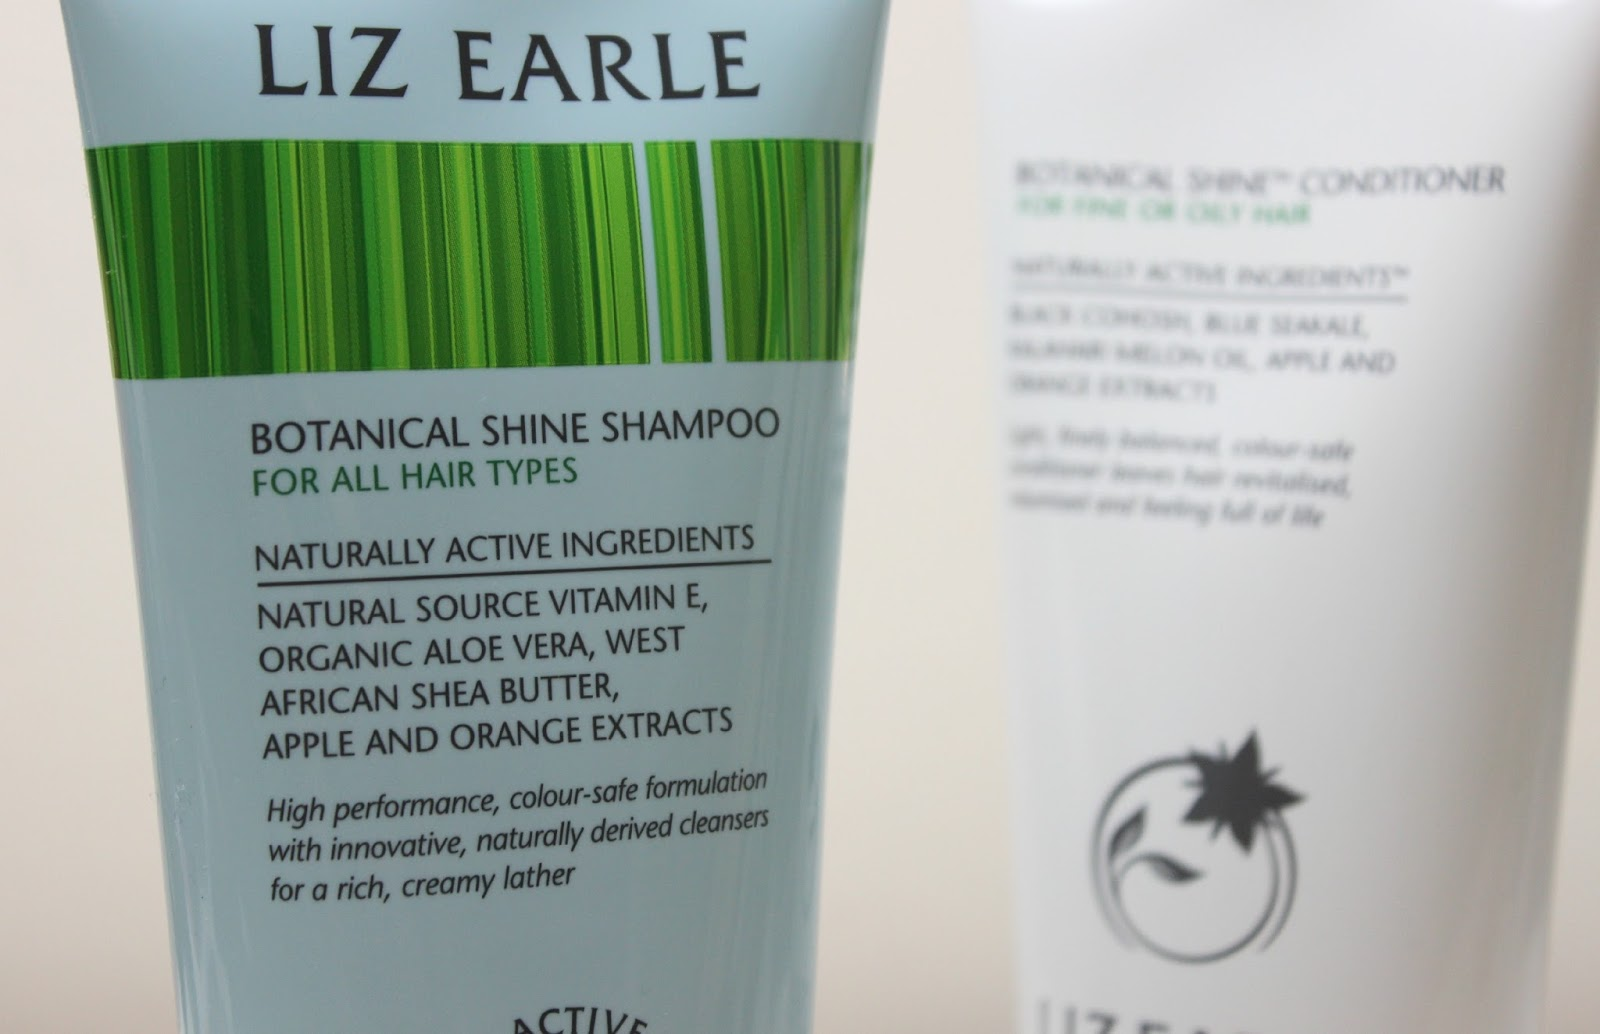 Liz earle botanical shine treatment